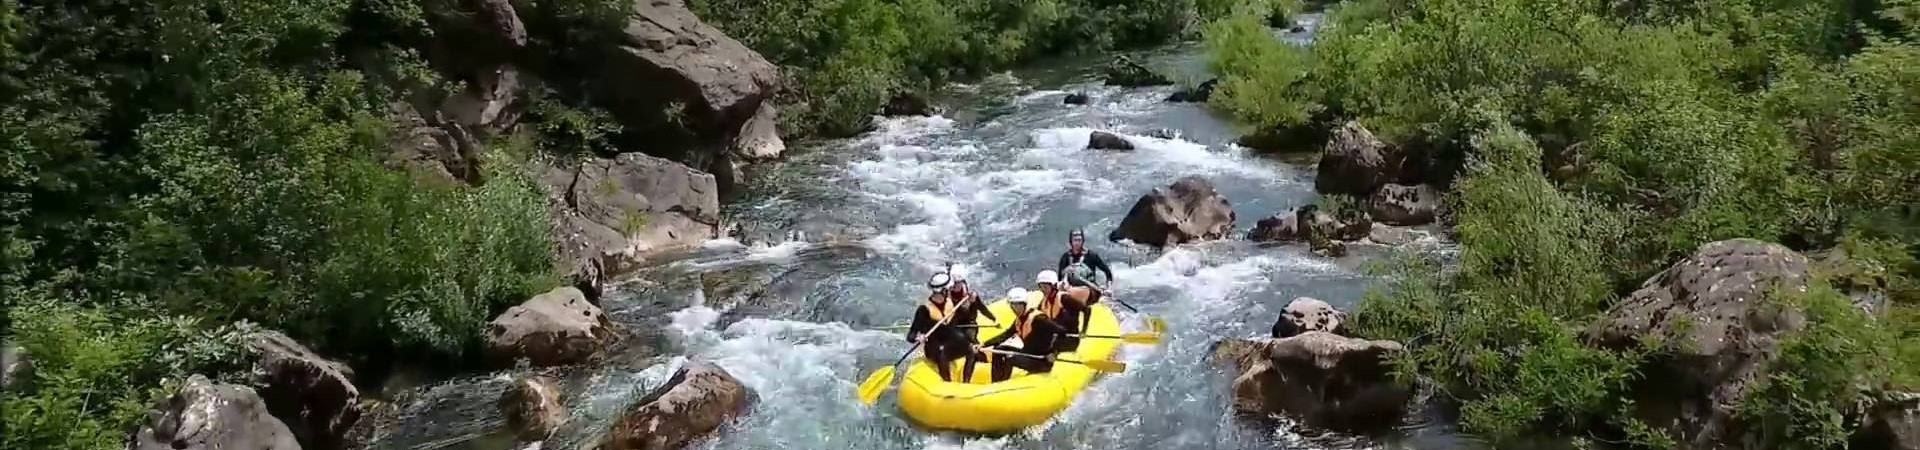 We Adventure rafting Omiš